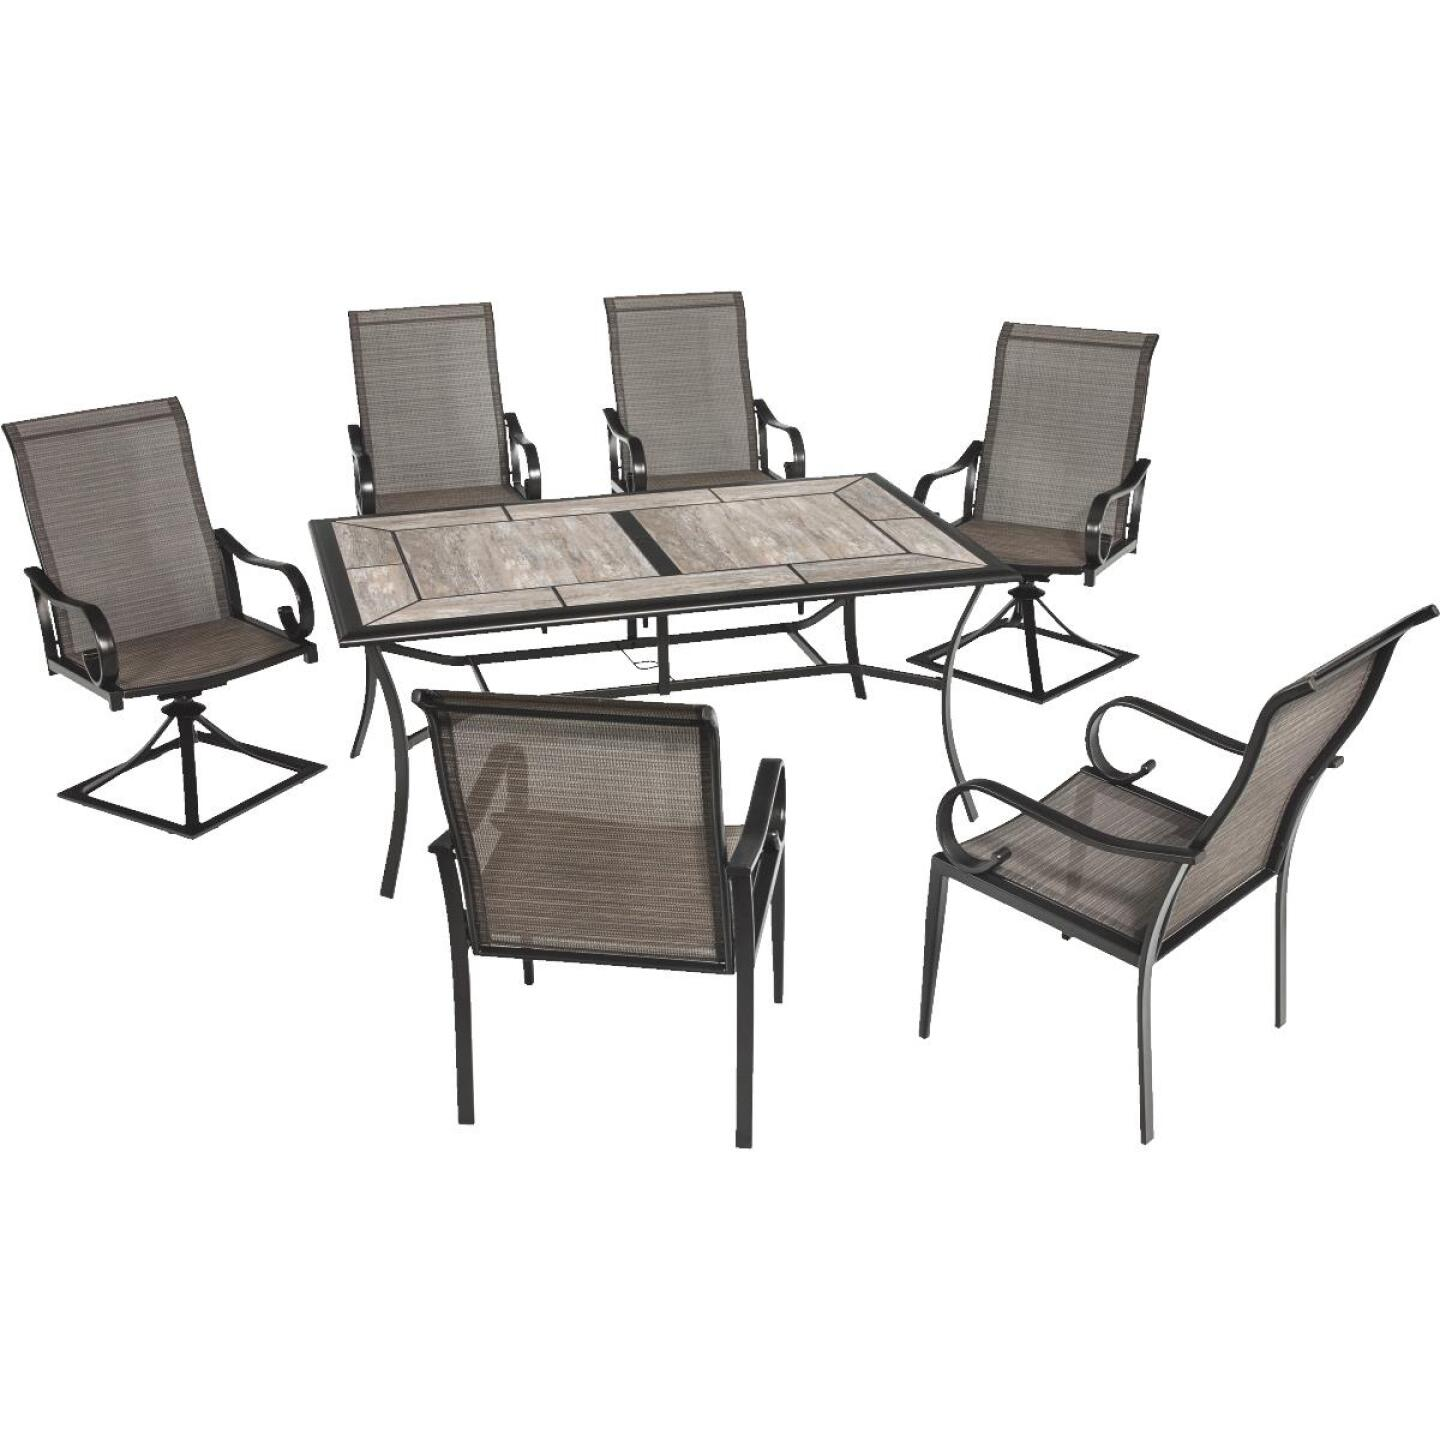 Outdoor Expressions Berkshire 7-Piece Dining Set Image 62